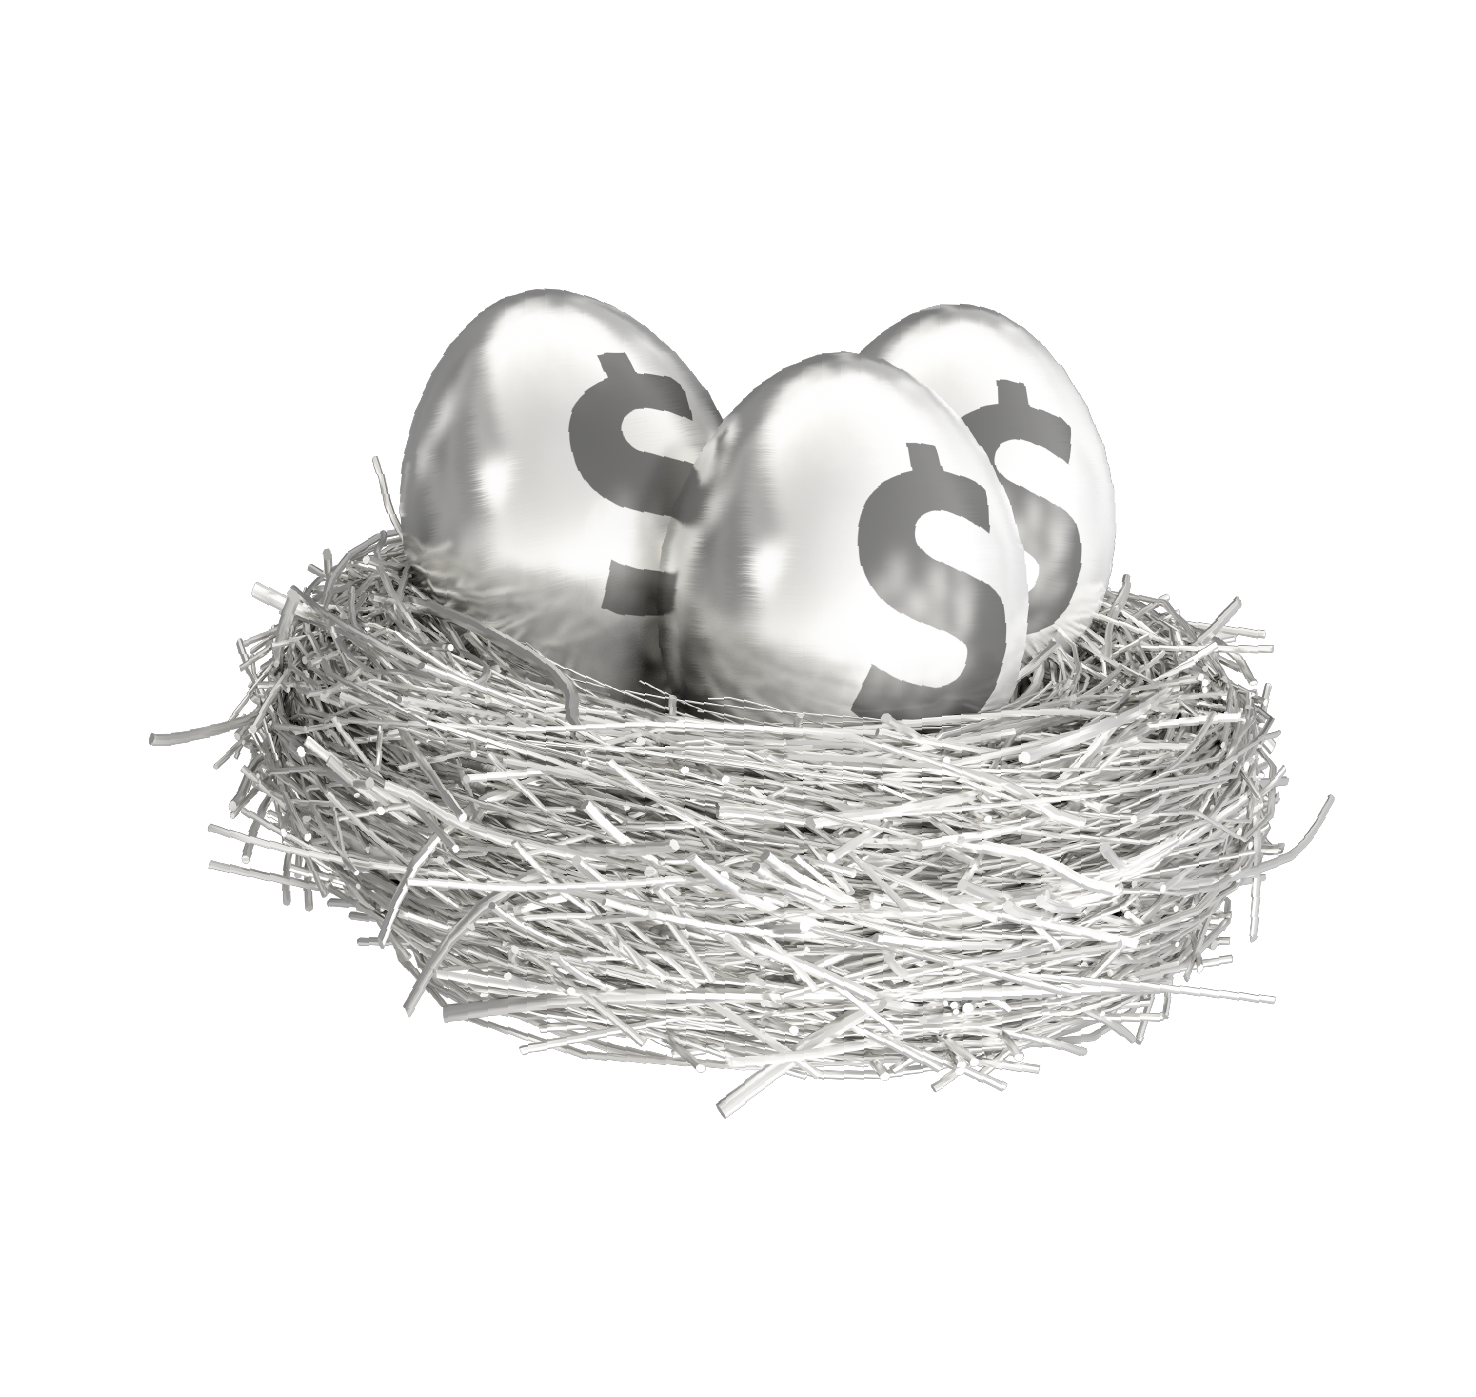 Optimizing your retirement   We manage risk to preserve capital and create an income stream to support your needs and goals